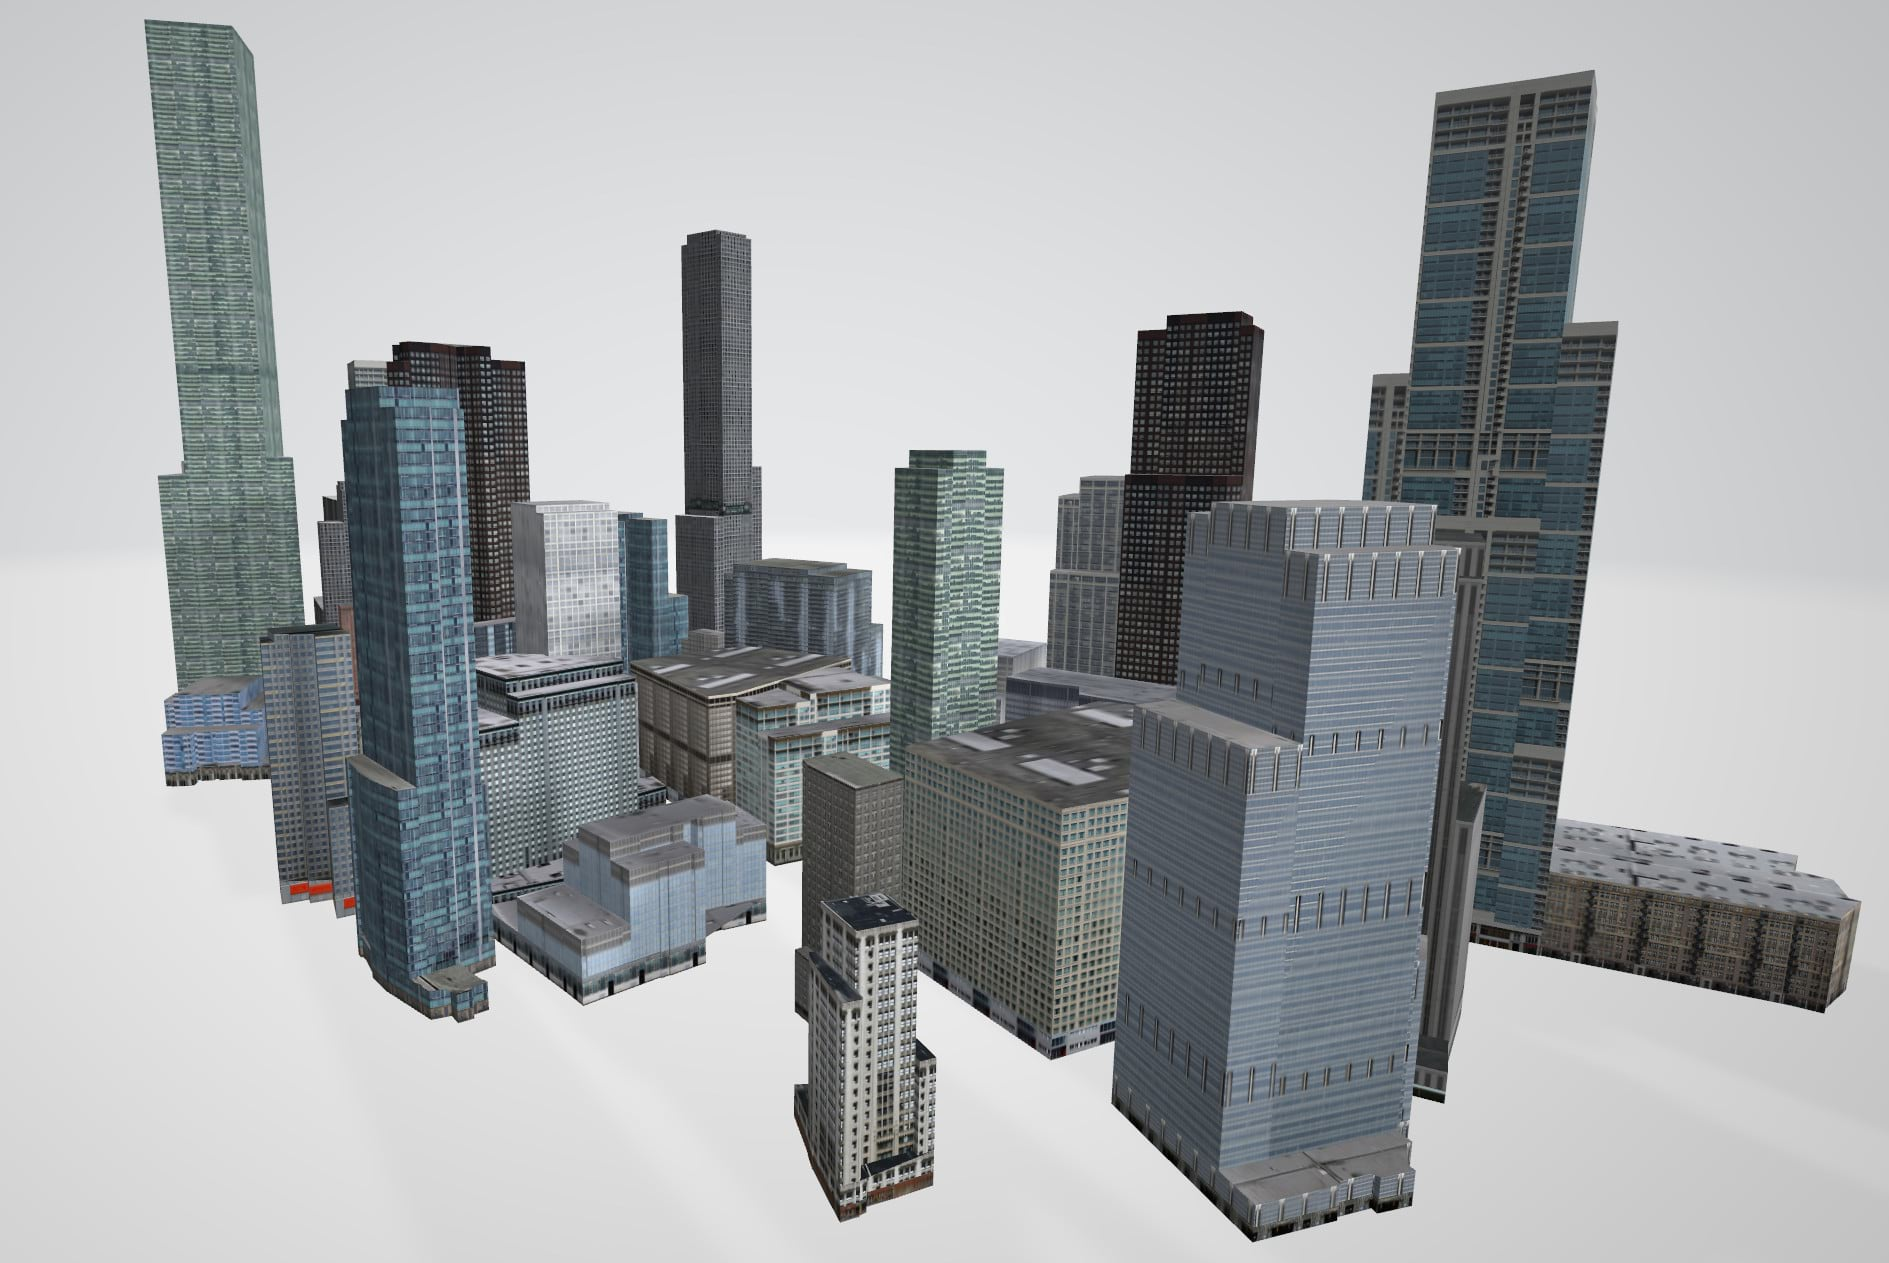 3D buildings procedurally generated on multiple initial shapes and exported as OBJ